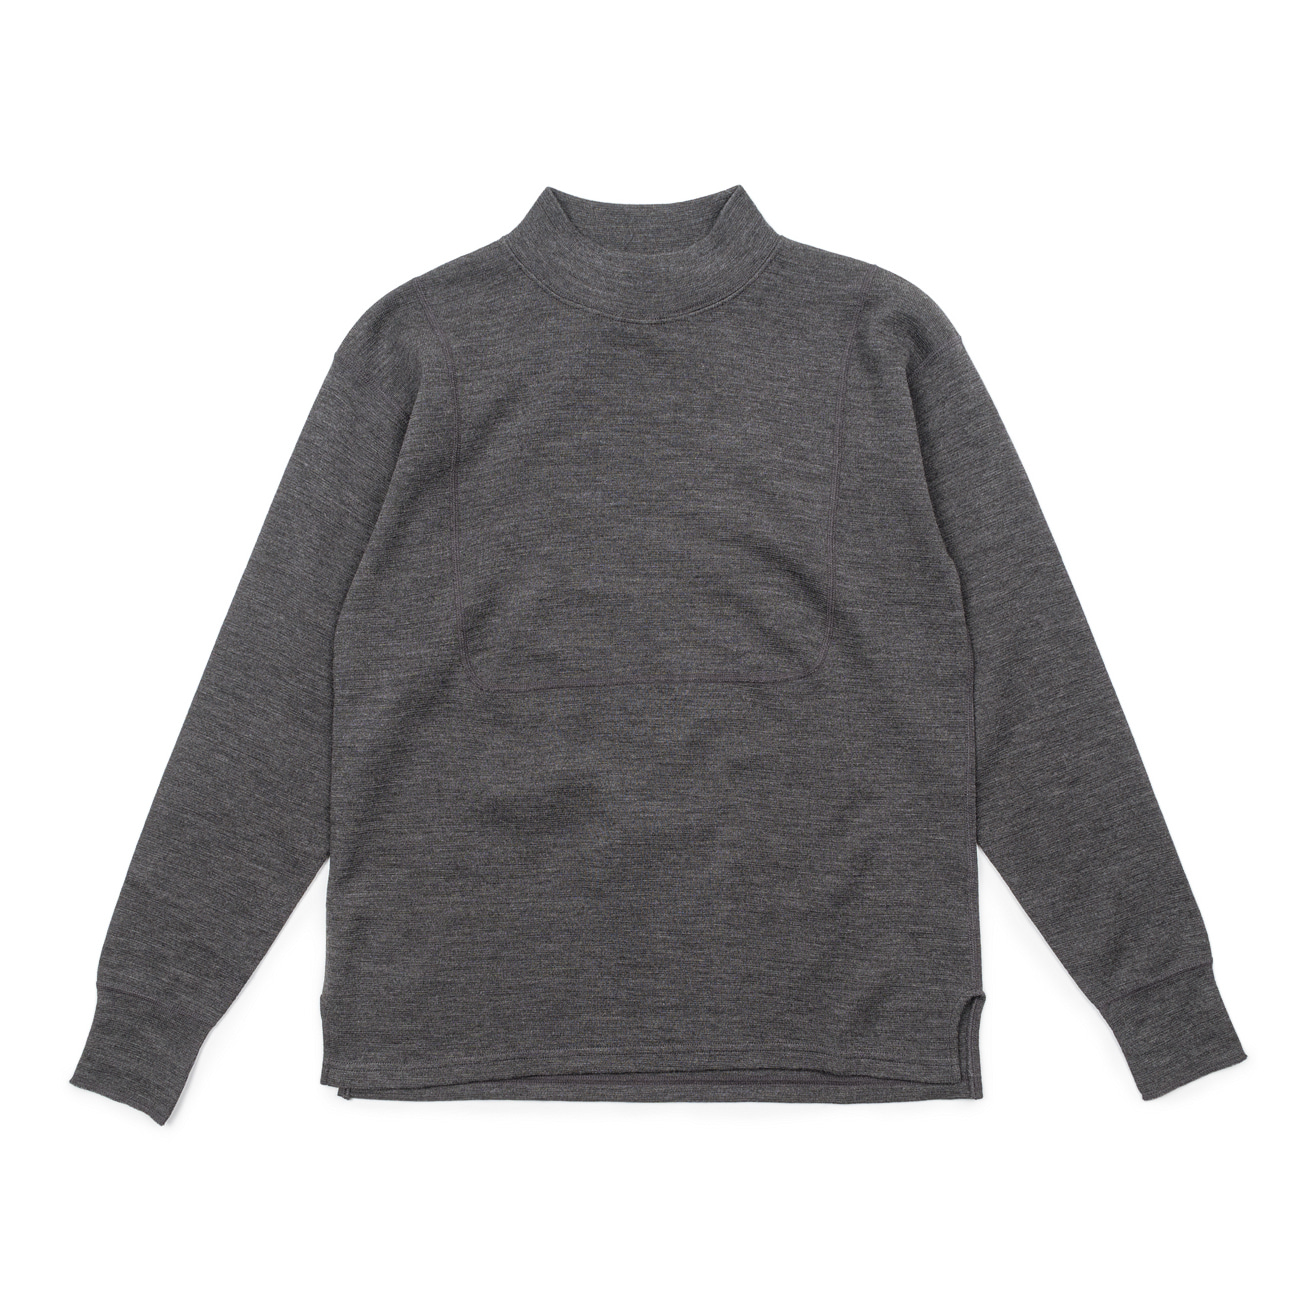 Naval Wool Highneck Top